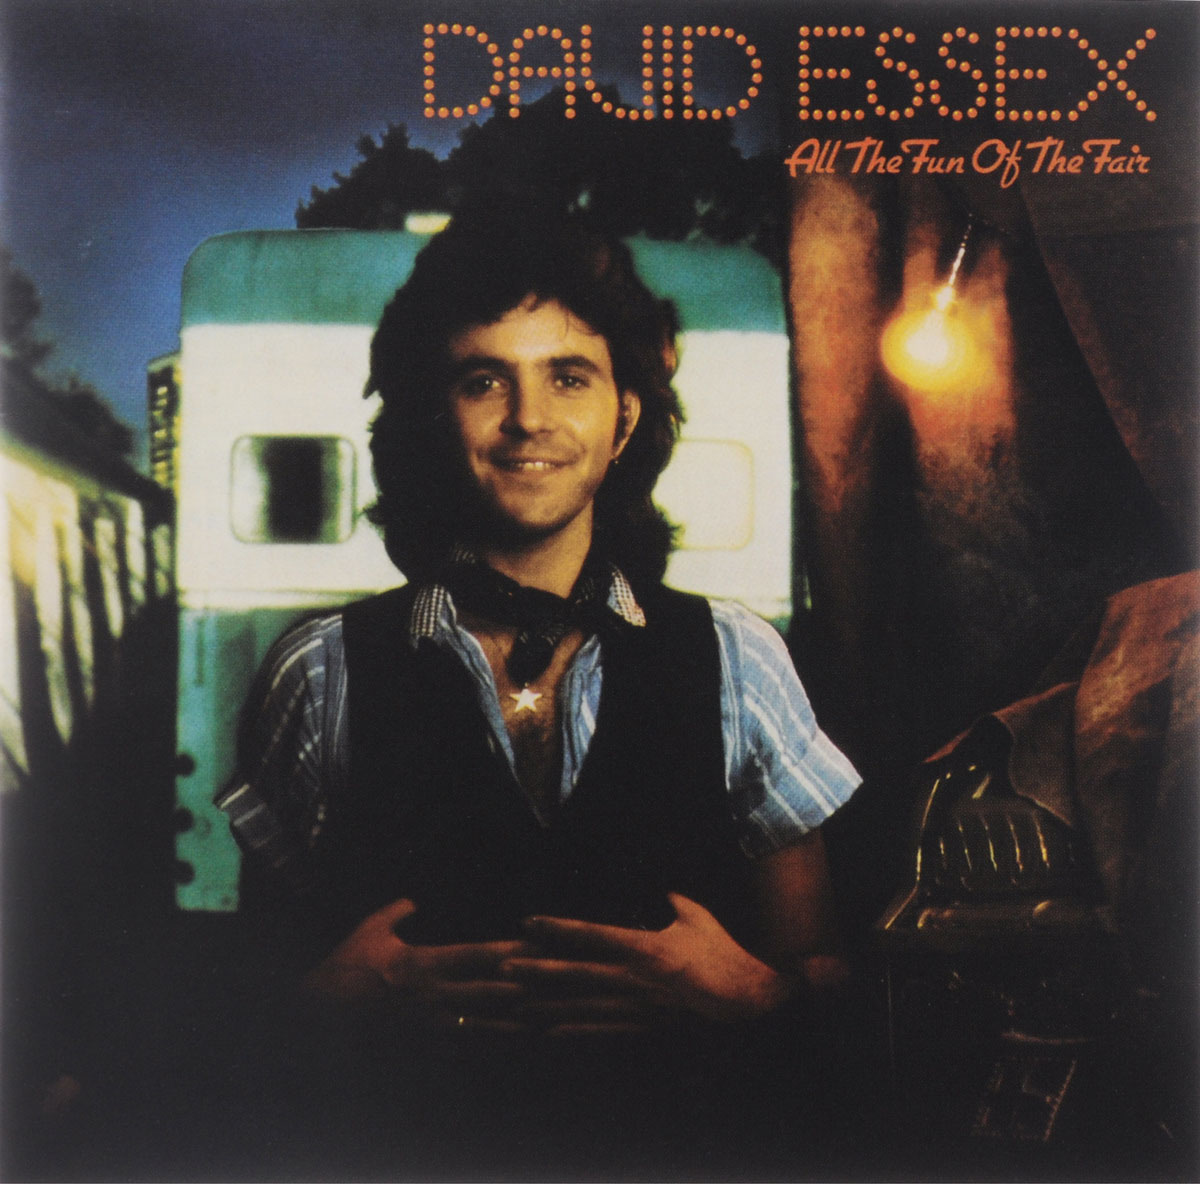 Дэвид Эссекс David Essex. All The Fun Of The Fair корма и питание